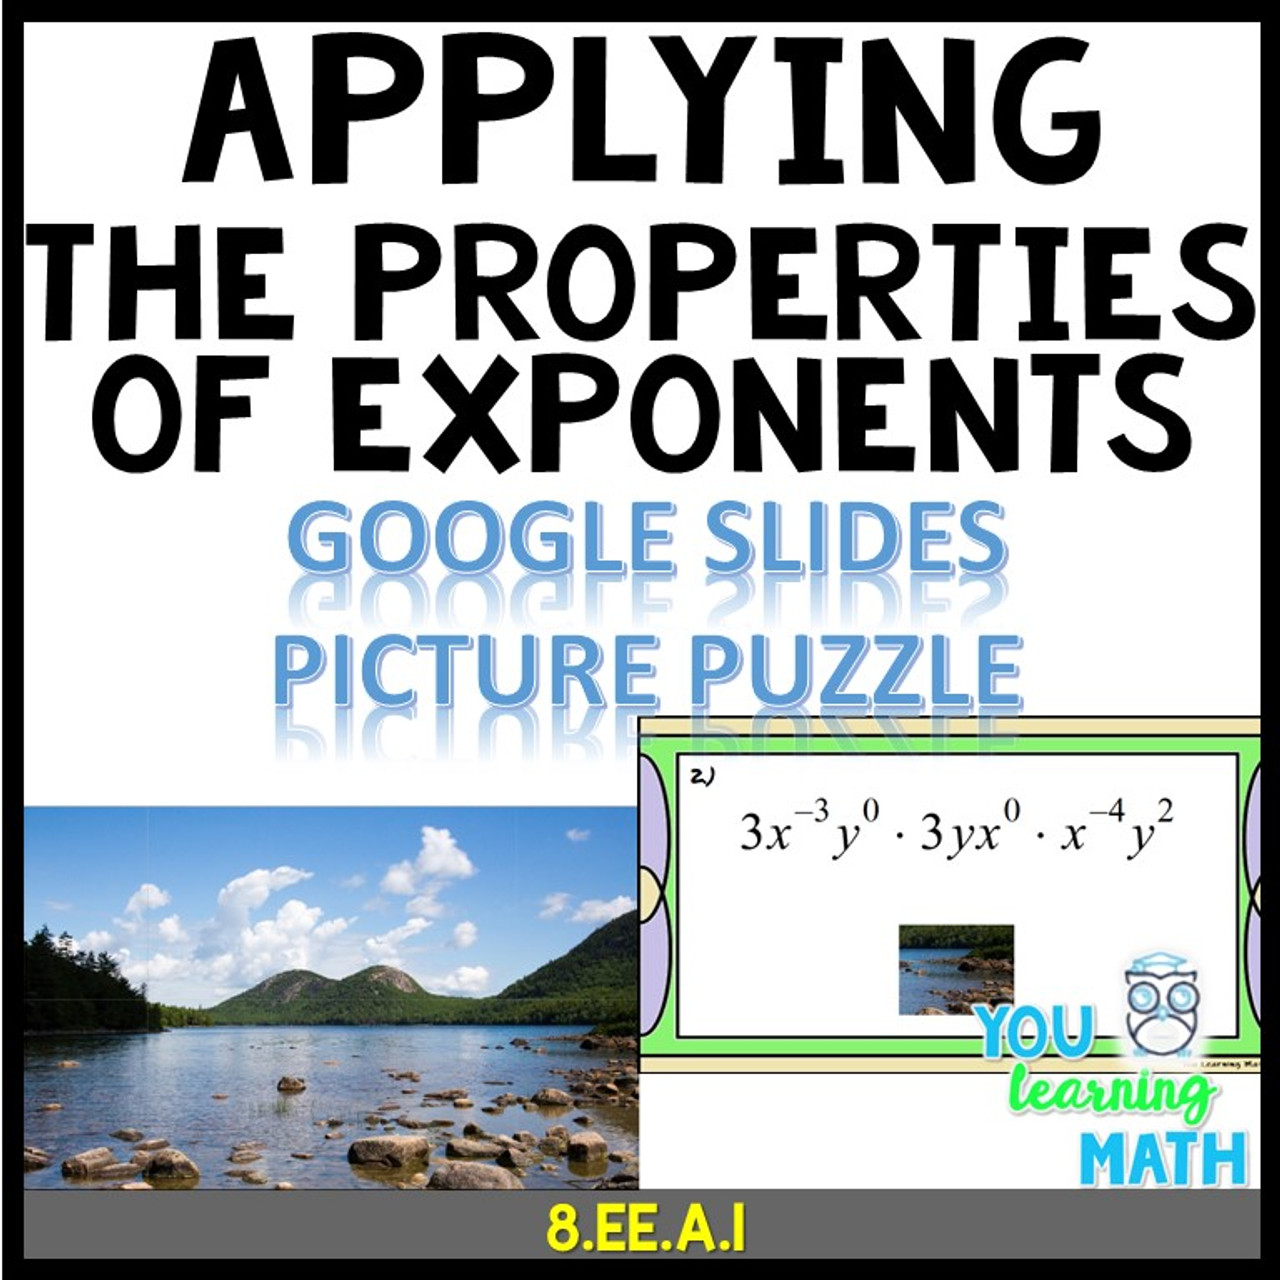 Applying the Properties of Exponents - Google Slides Picture Puzzle - 20 Problems